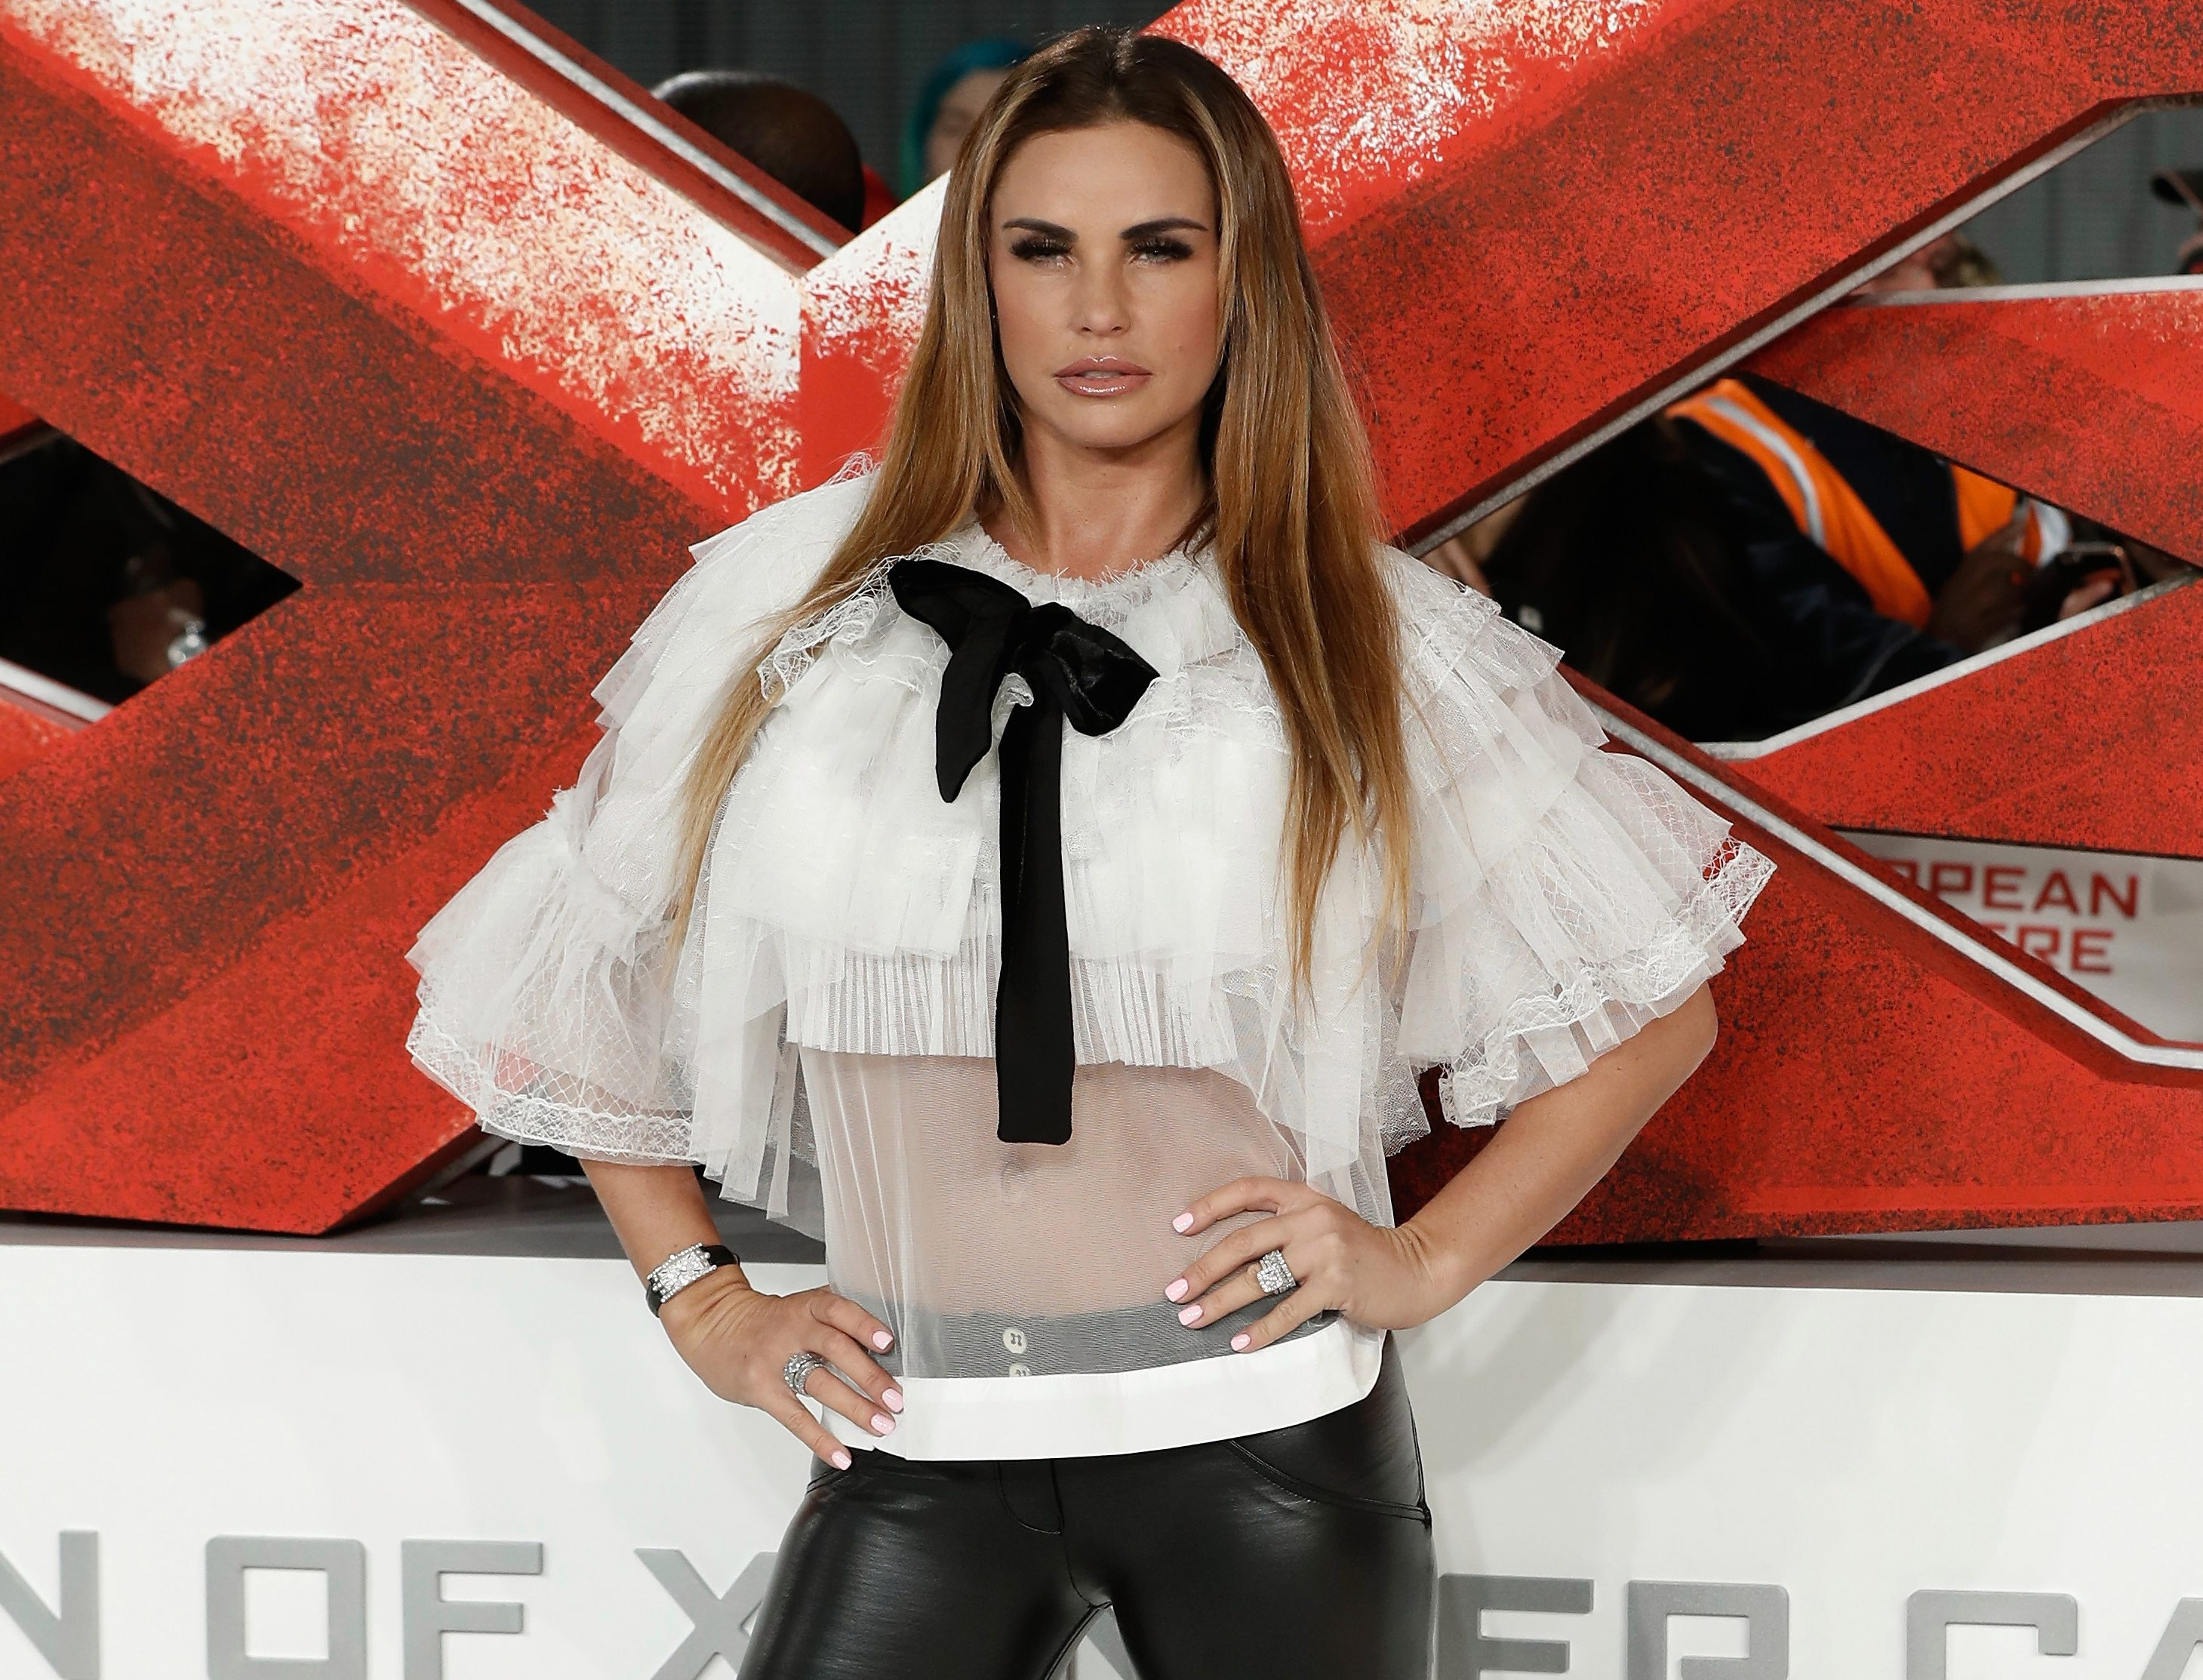 Katie Price hits out at claims she's planning another boob job after jetting to Turkey for more surgery